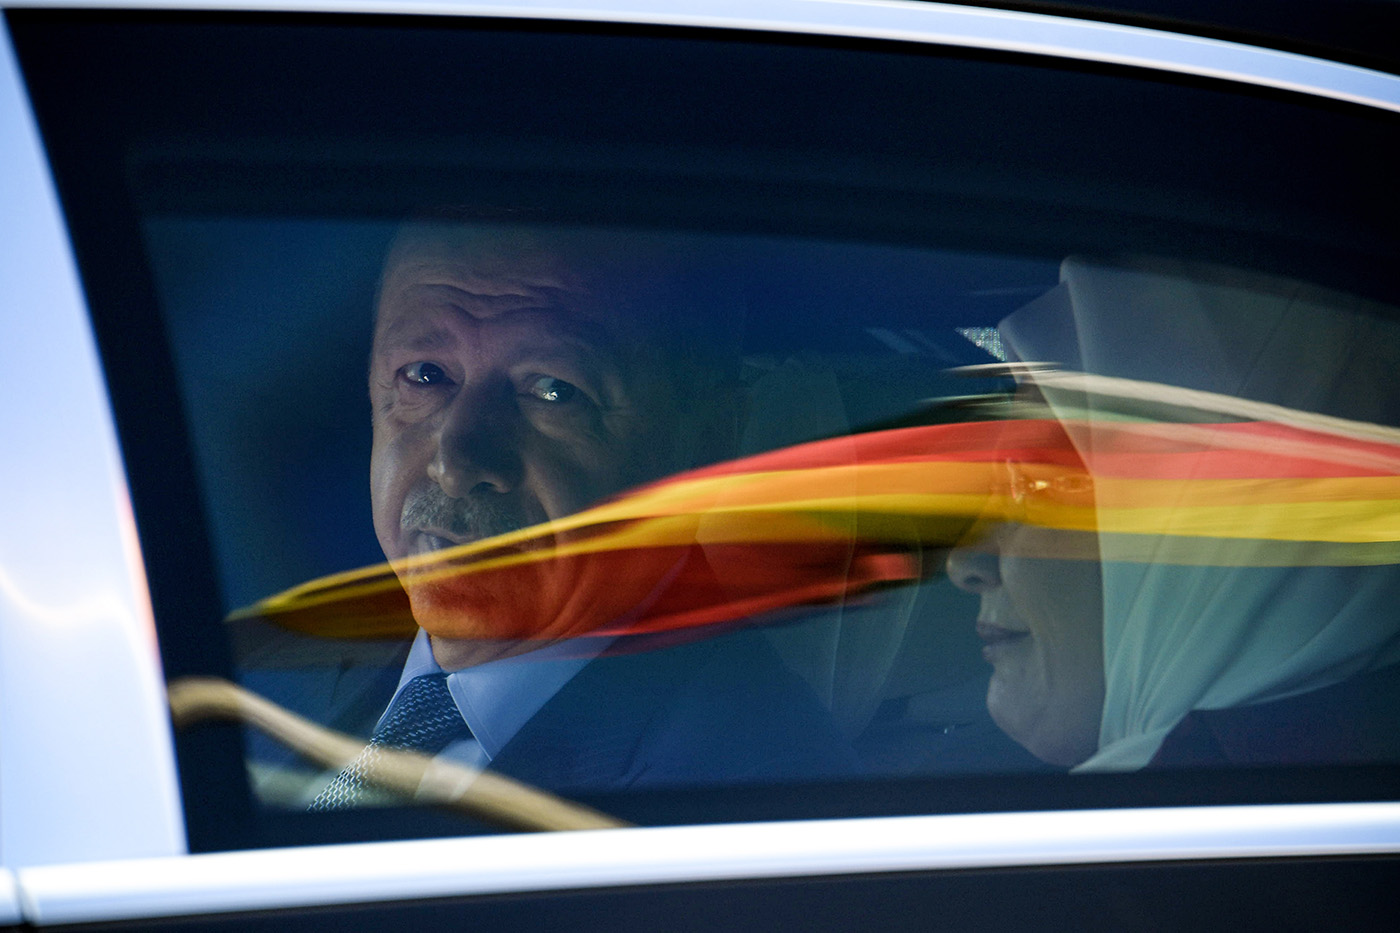 President Recep Tayyip Erdou011fan sits in a car behind a reflection of the German flag as he departs after his arrival from the Berlin Tegel Airport for an official visit in Berlin, Germany, 27 September 2018. (EPA Photo)